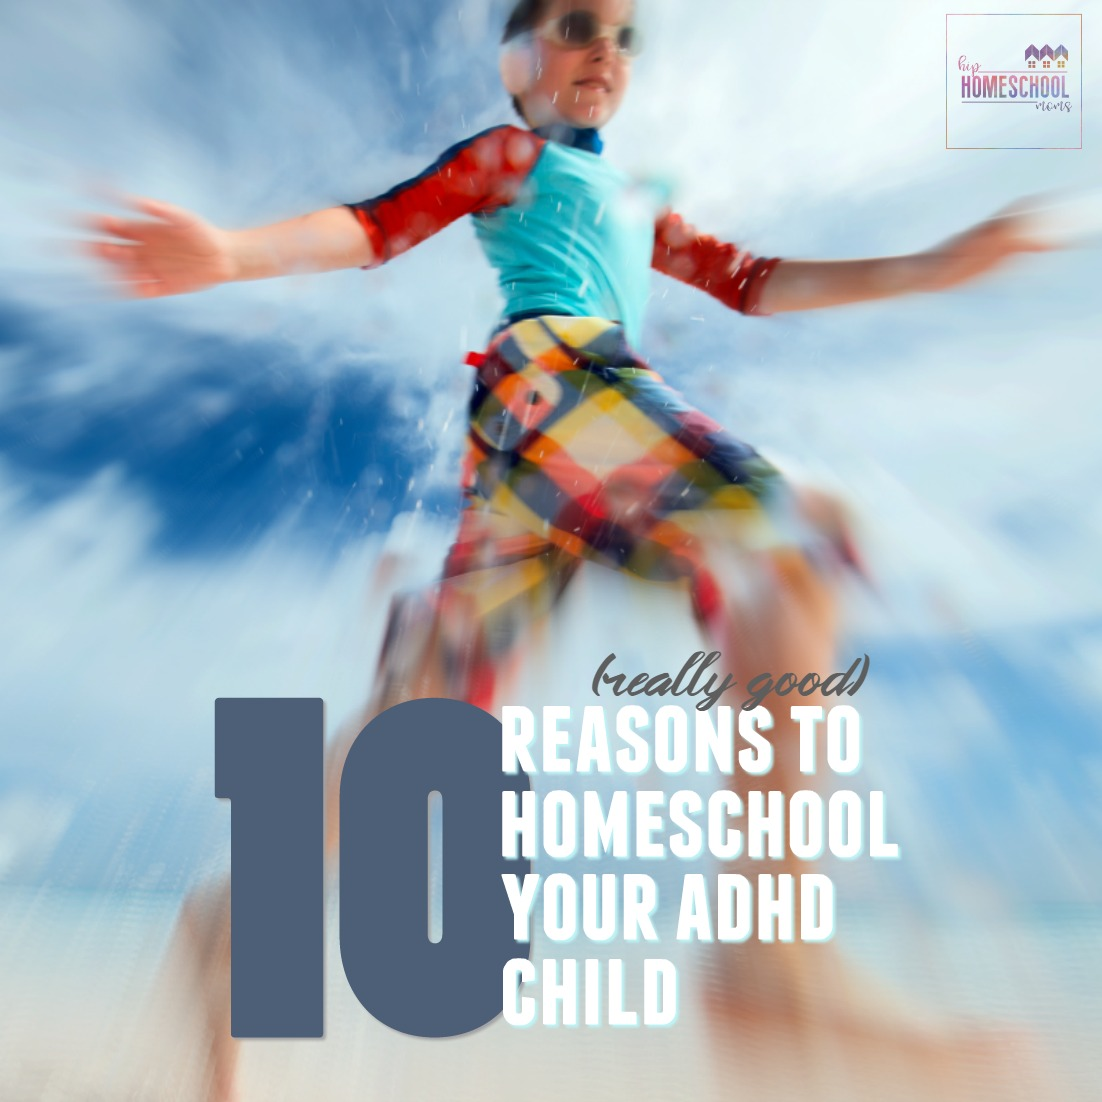 10 Reasons To Homeschool Your ADHD Child